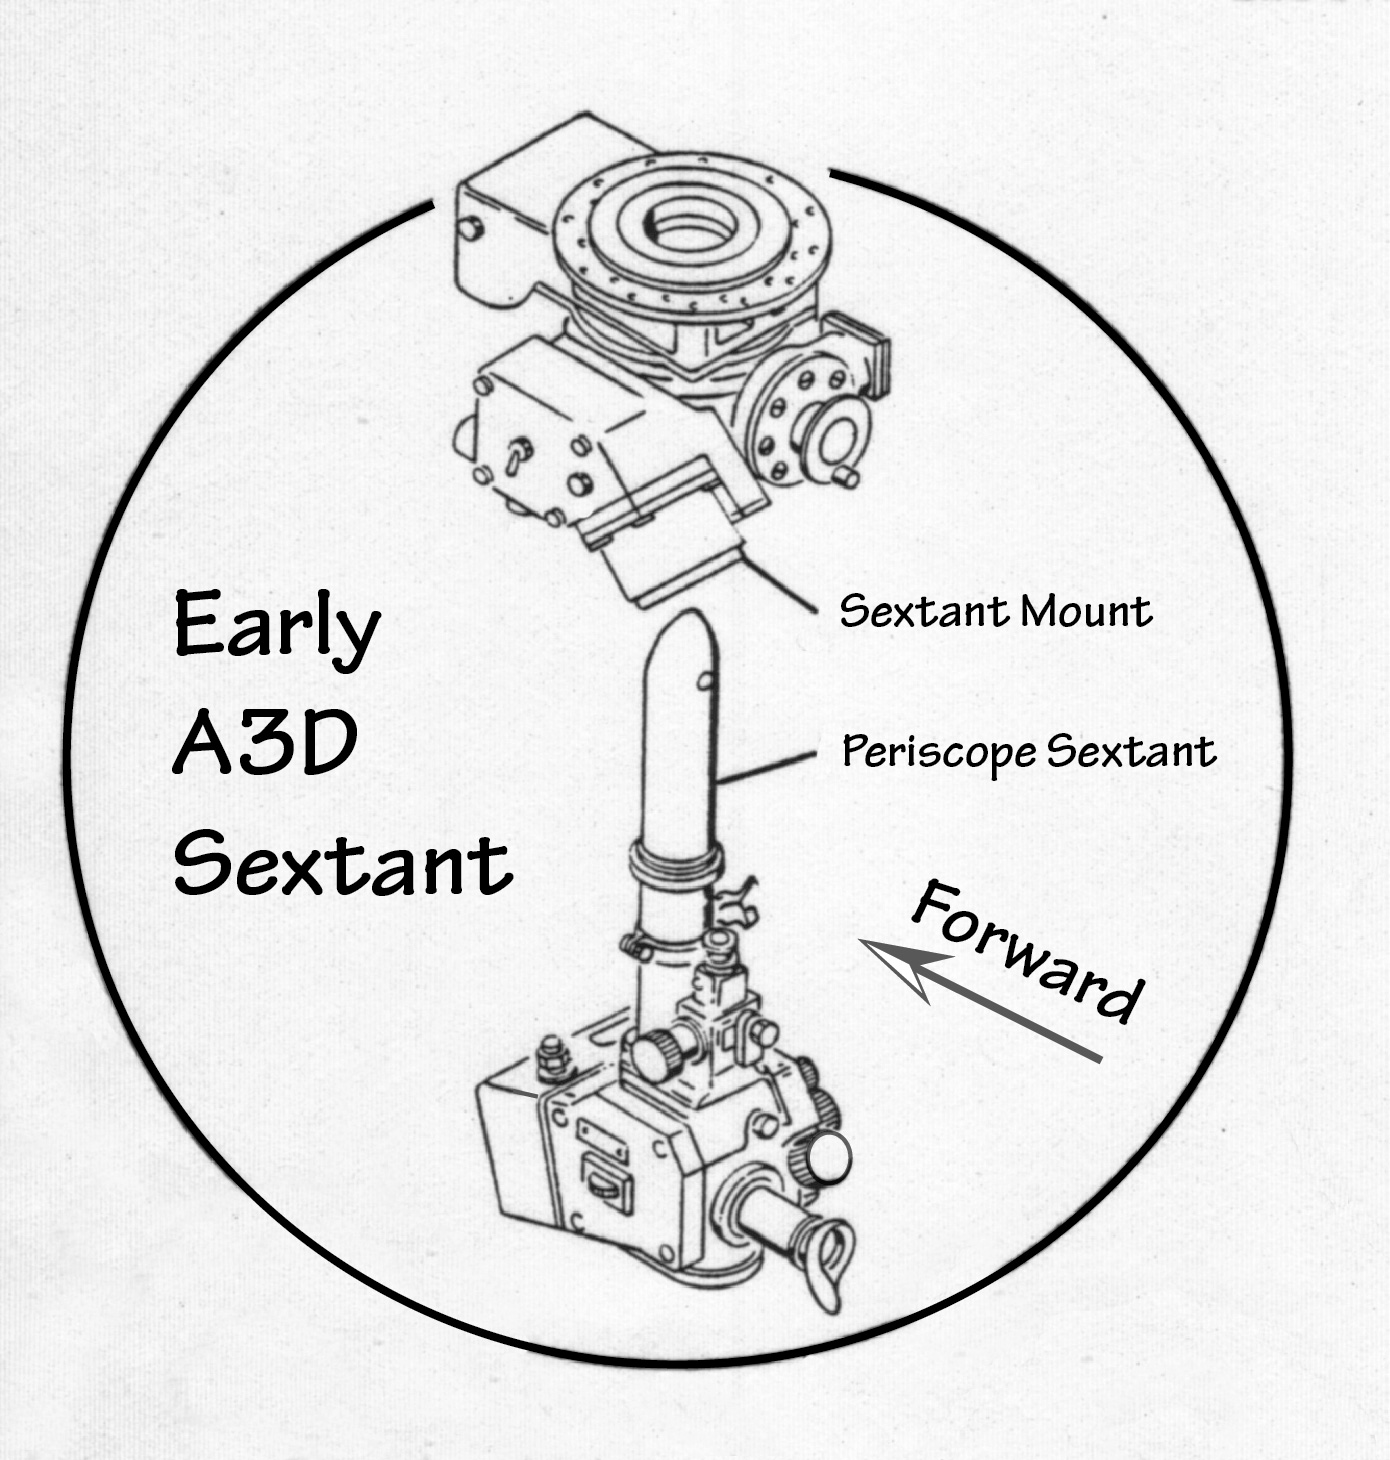 small resolution of when sights were to be taken the periscope sextant was inserted into the mount the tip stuck out about an inch above the skin on the airplane